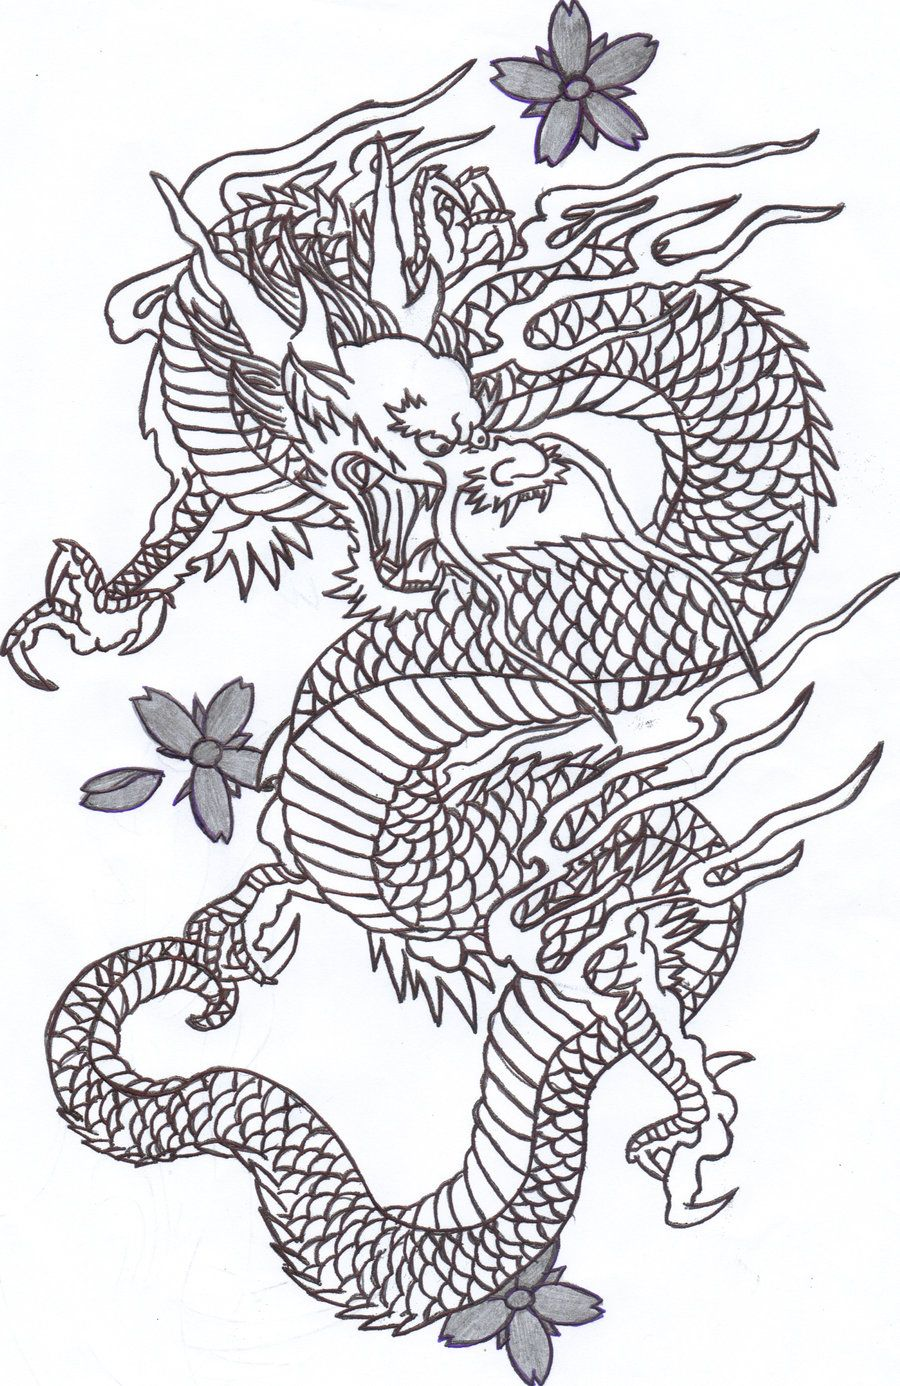 Chinese Dragon 2 By Sunshine Vamp On Deviantart Japanese Dragon Tattoos Dragon Tattoo Outline Chinese Dragon Tattoos